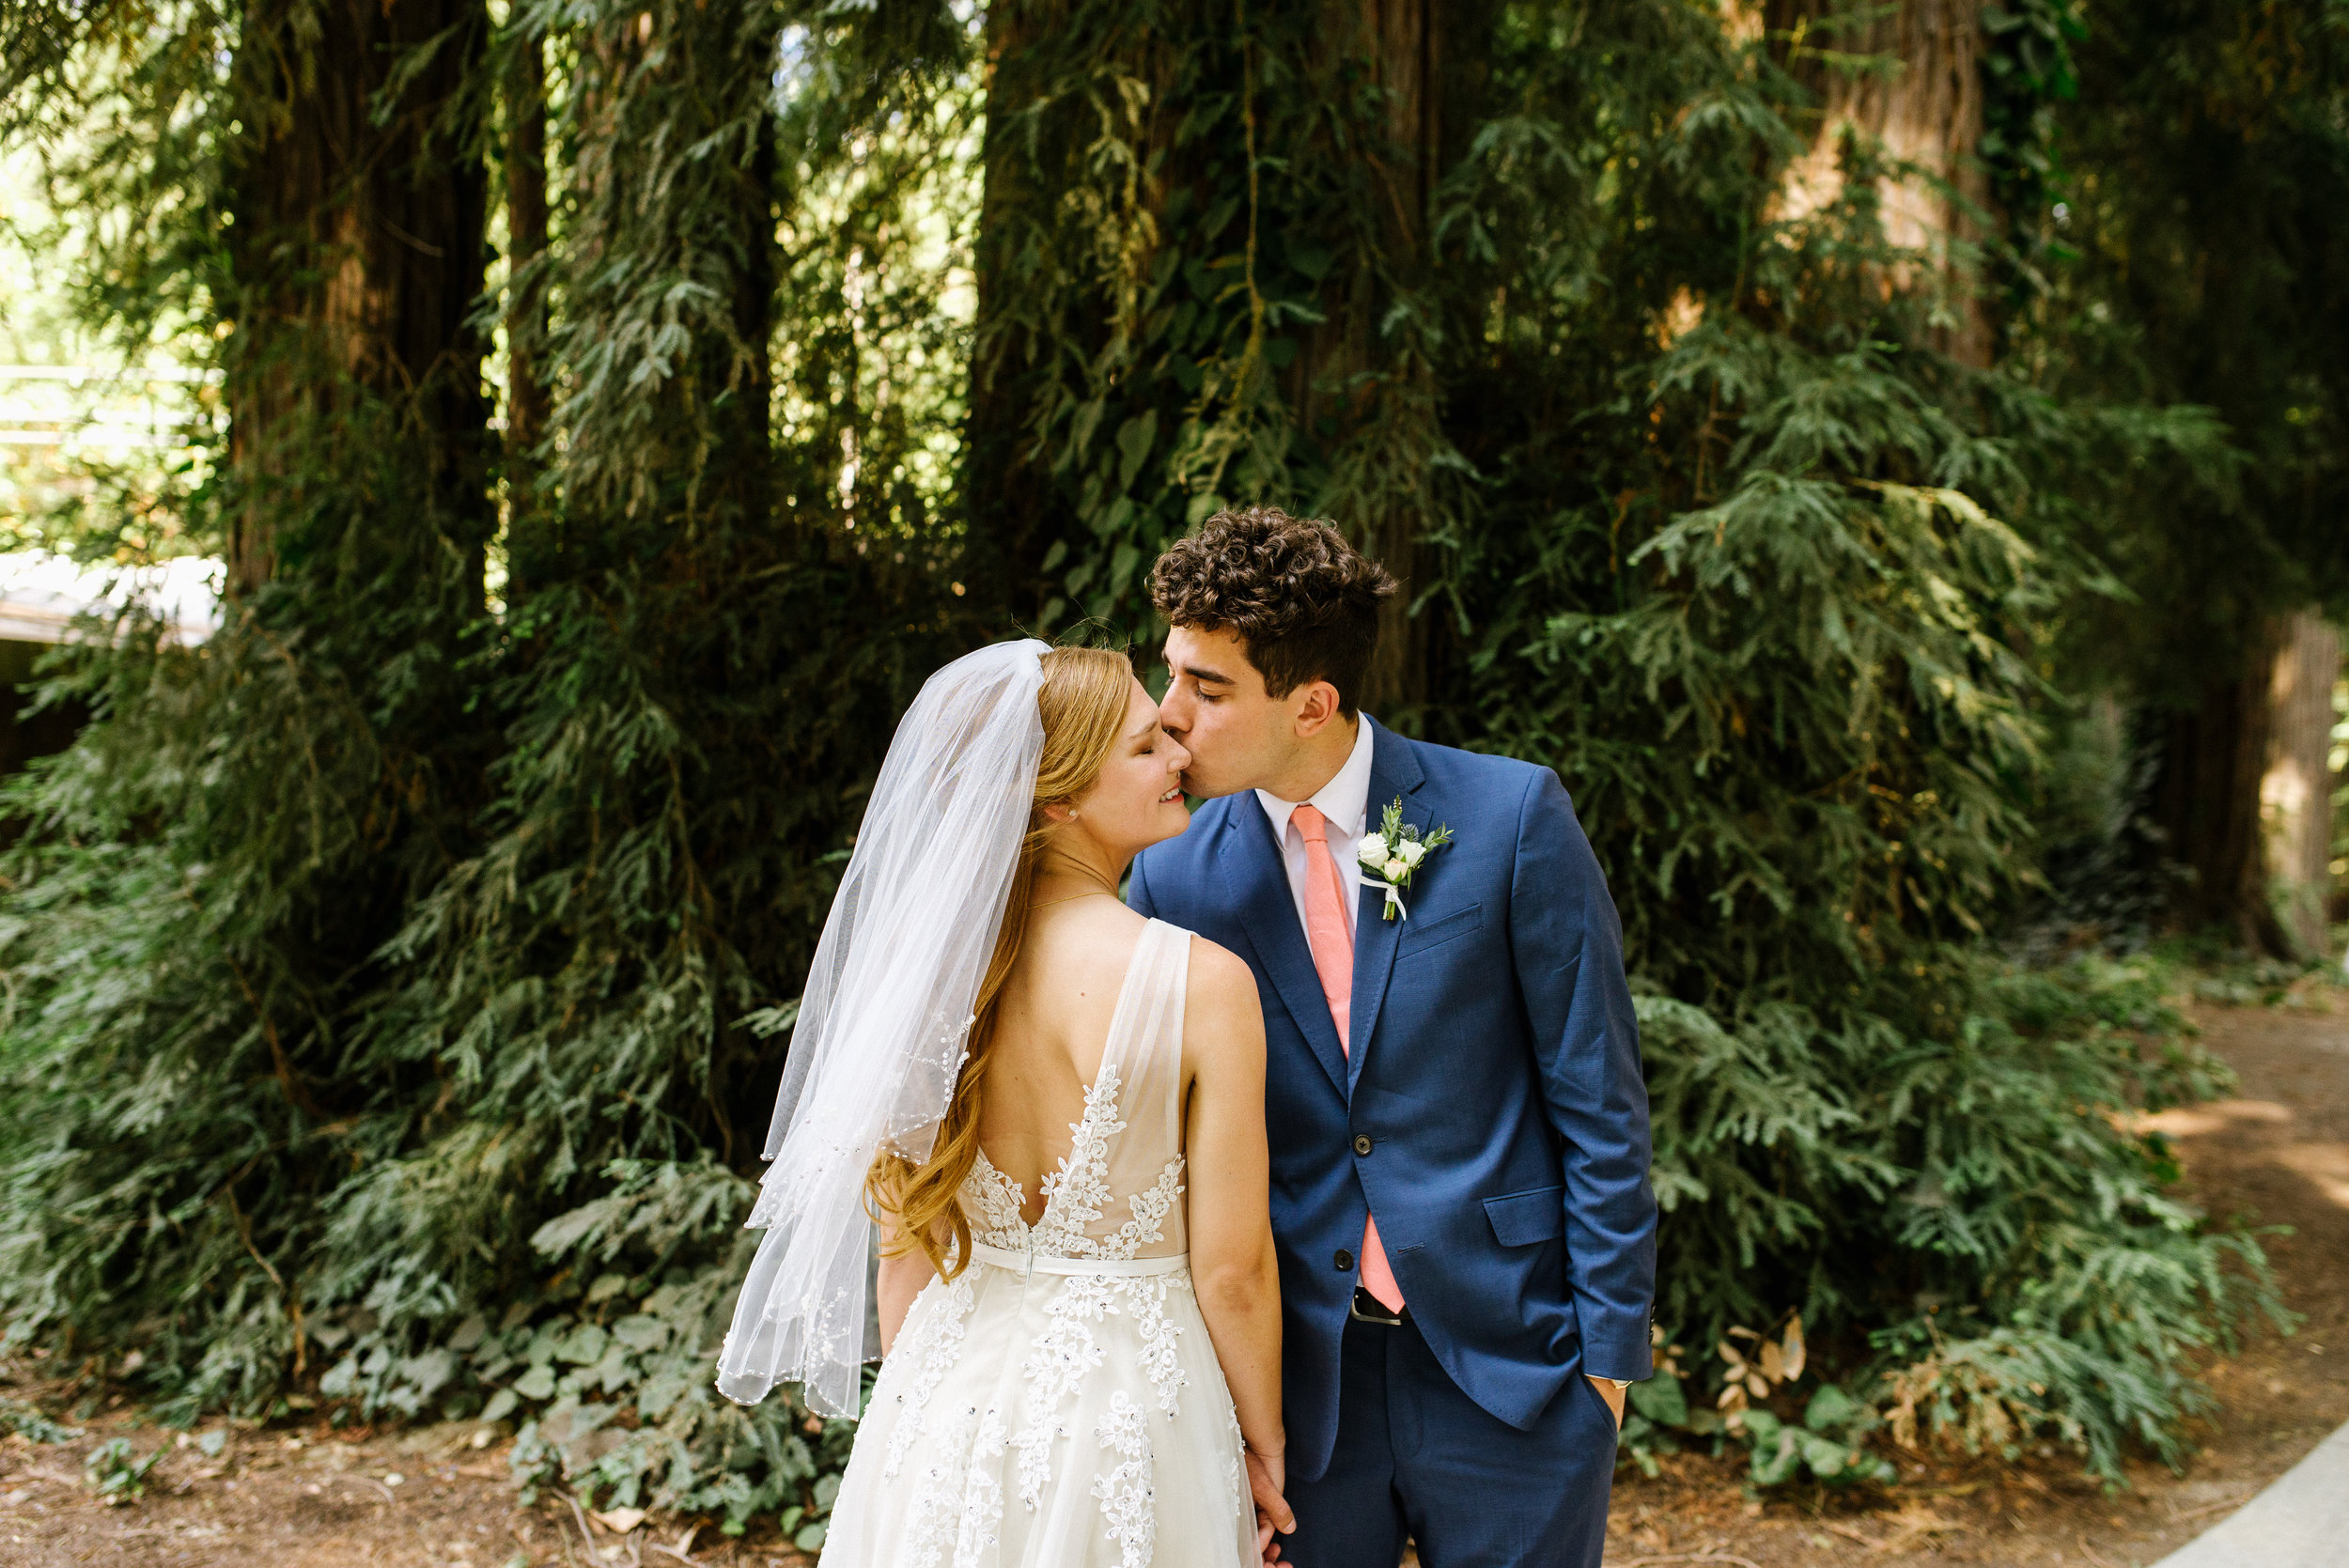 amphitheater-of-the-redwoods-wedding-erikariley-chelsea-dier-photography